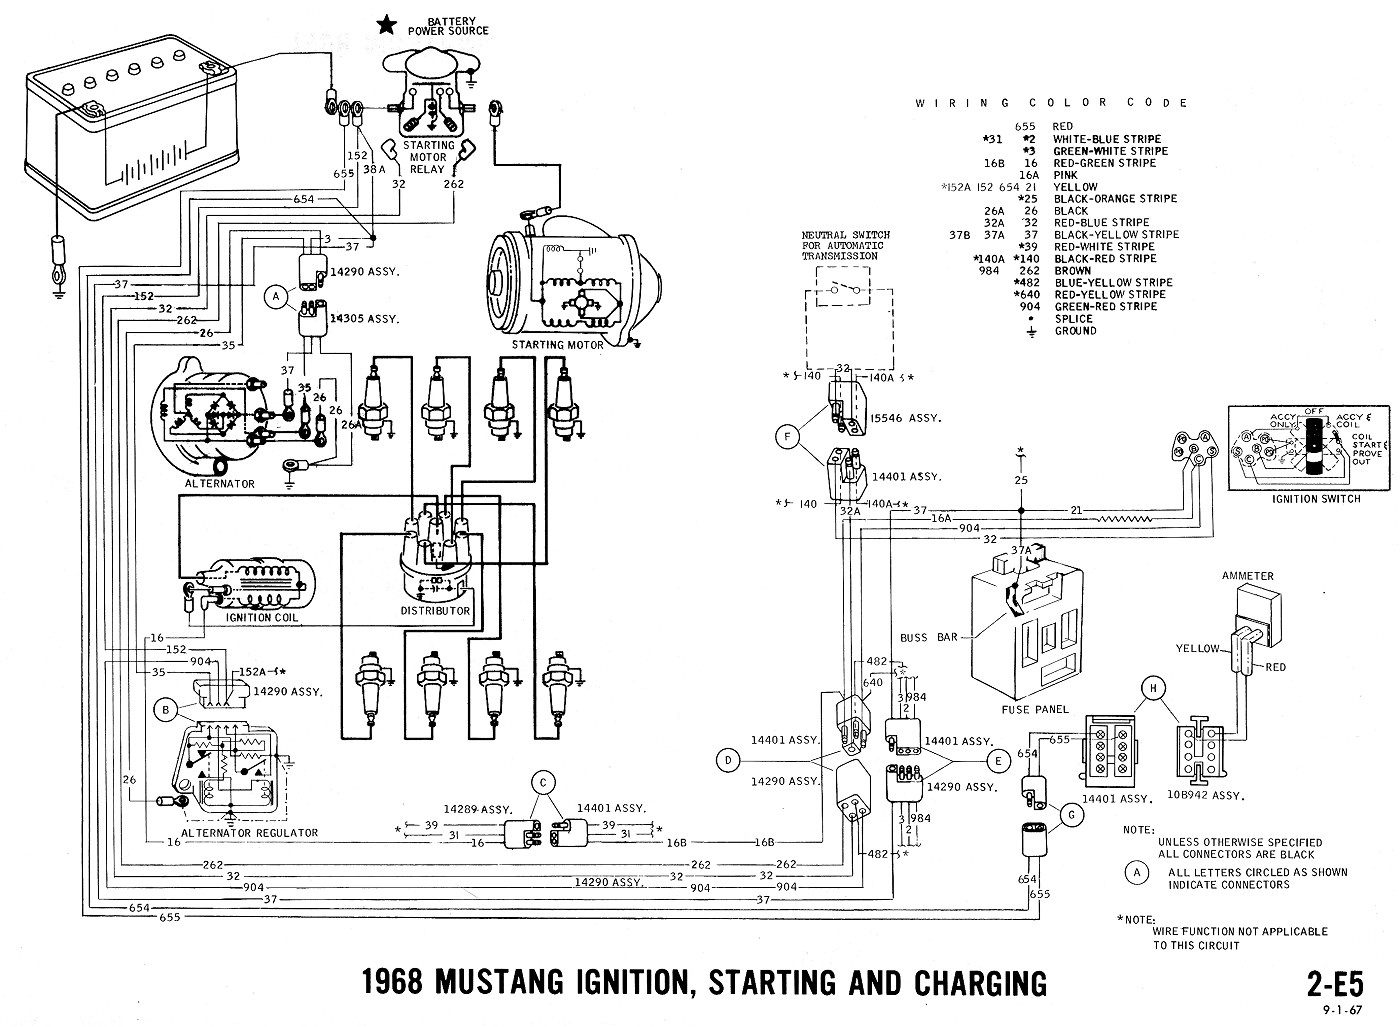 1980 mustang alternator wiring blog wiring diagrams  1968 galaxie 500 engine wiring diagram #12